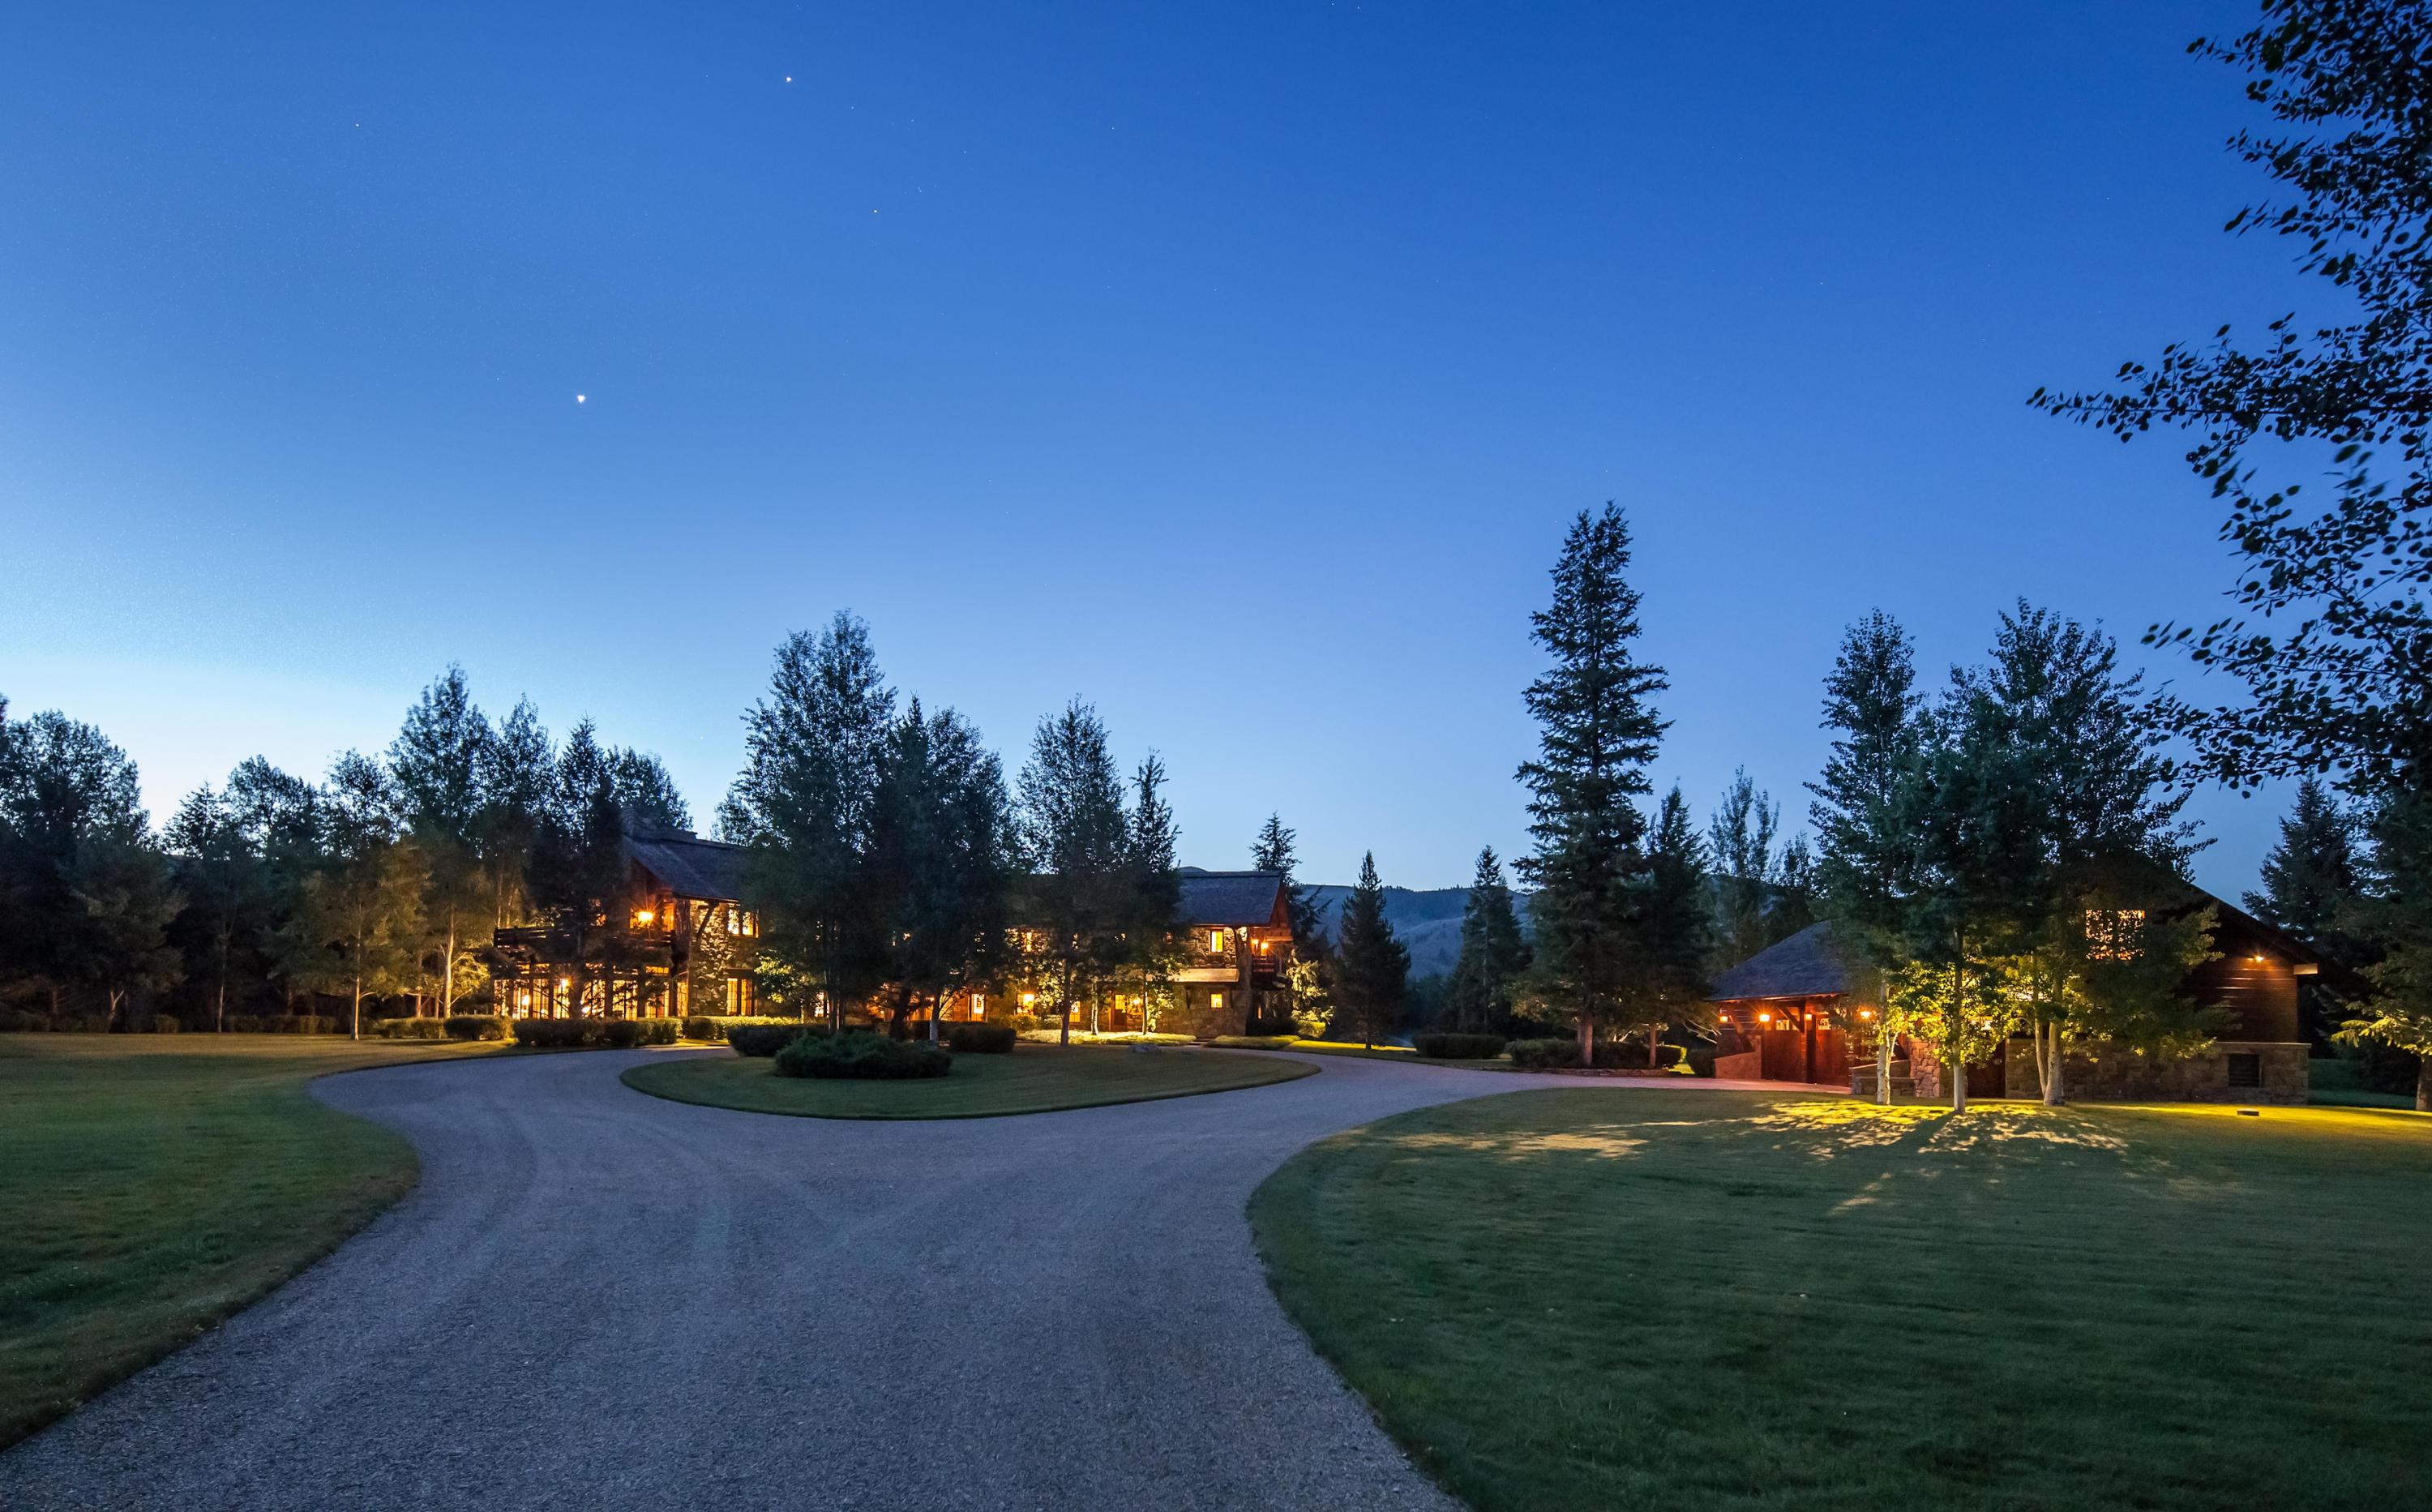 112 BIG WOOD RIVER DRIVE, KETCHUM, ID 83340